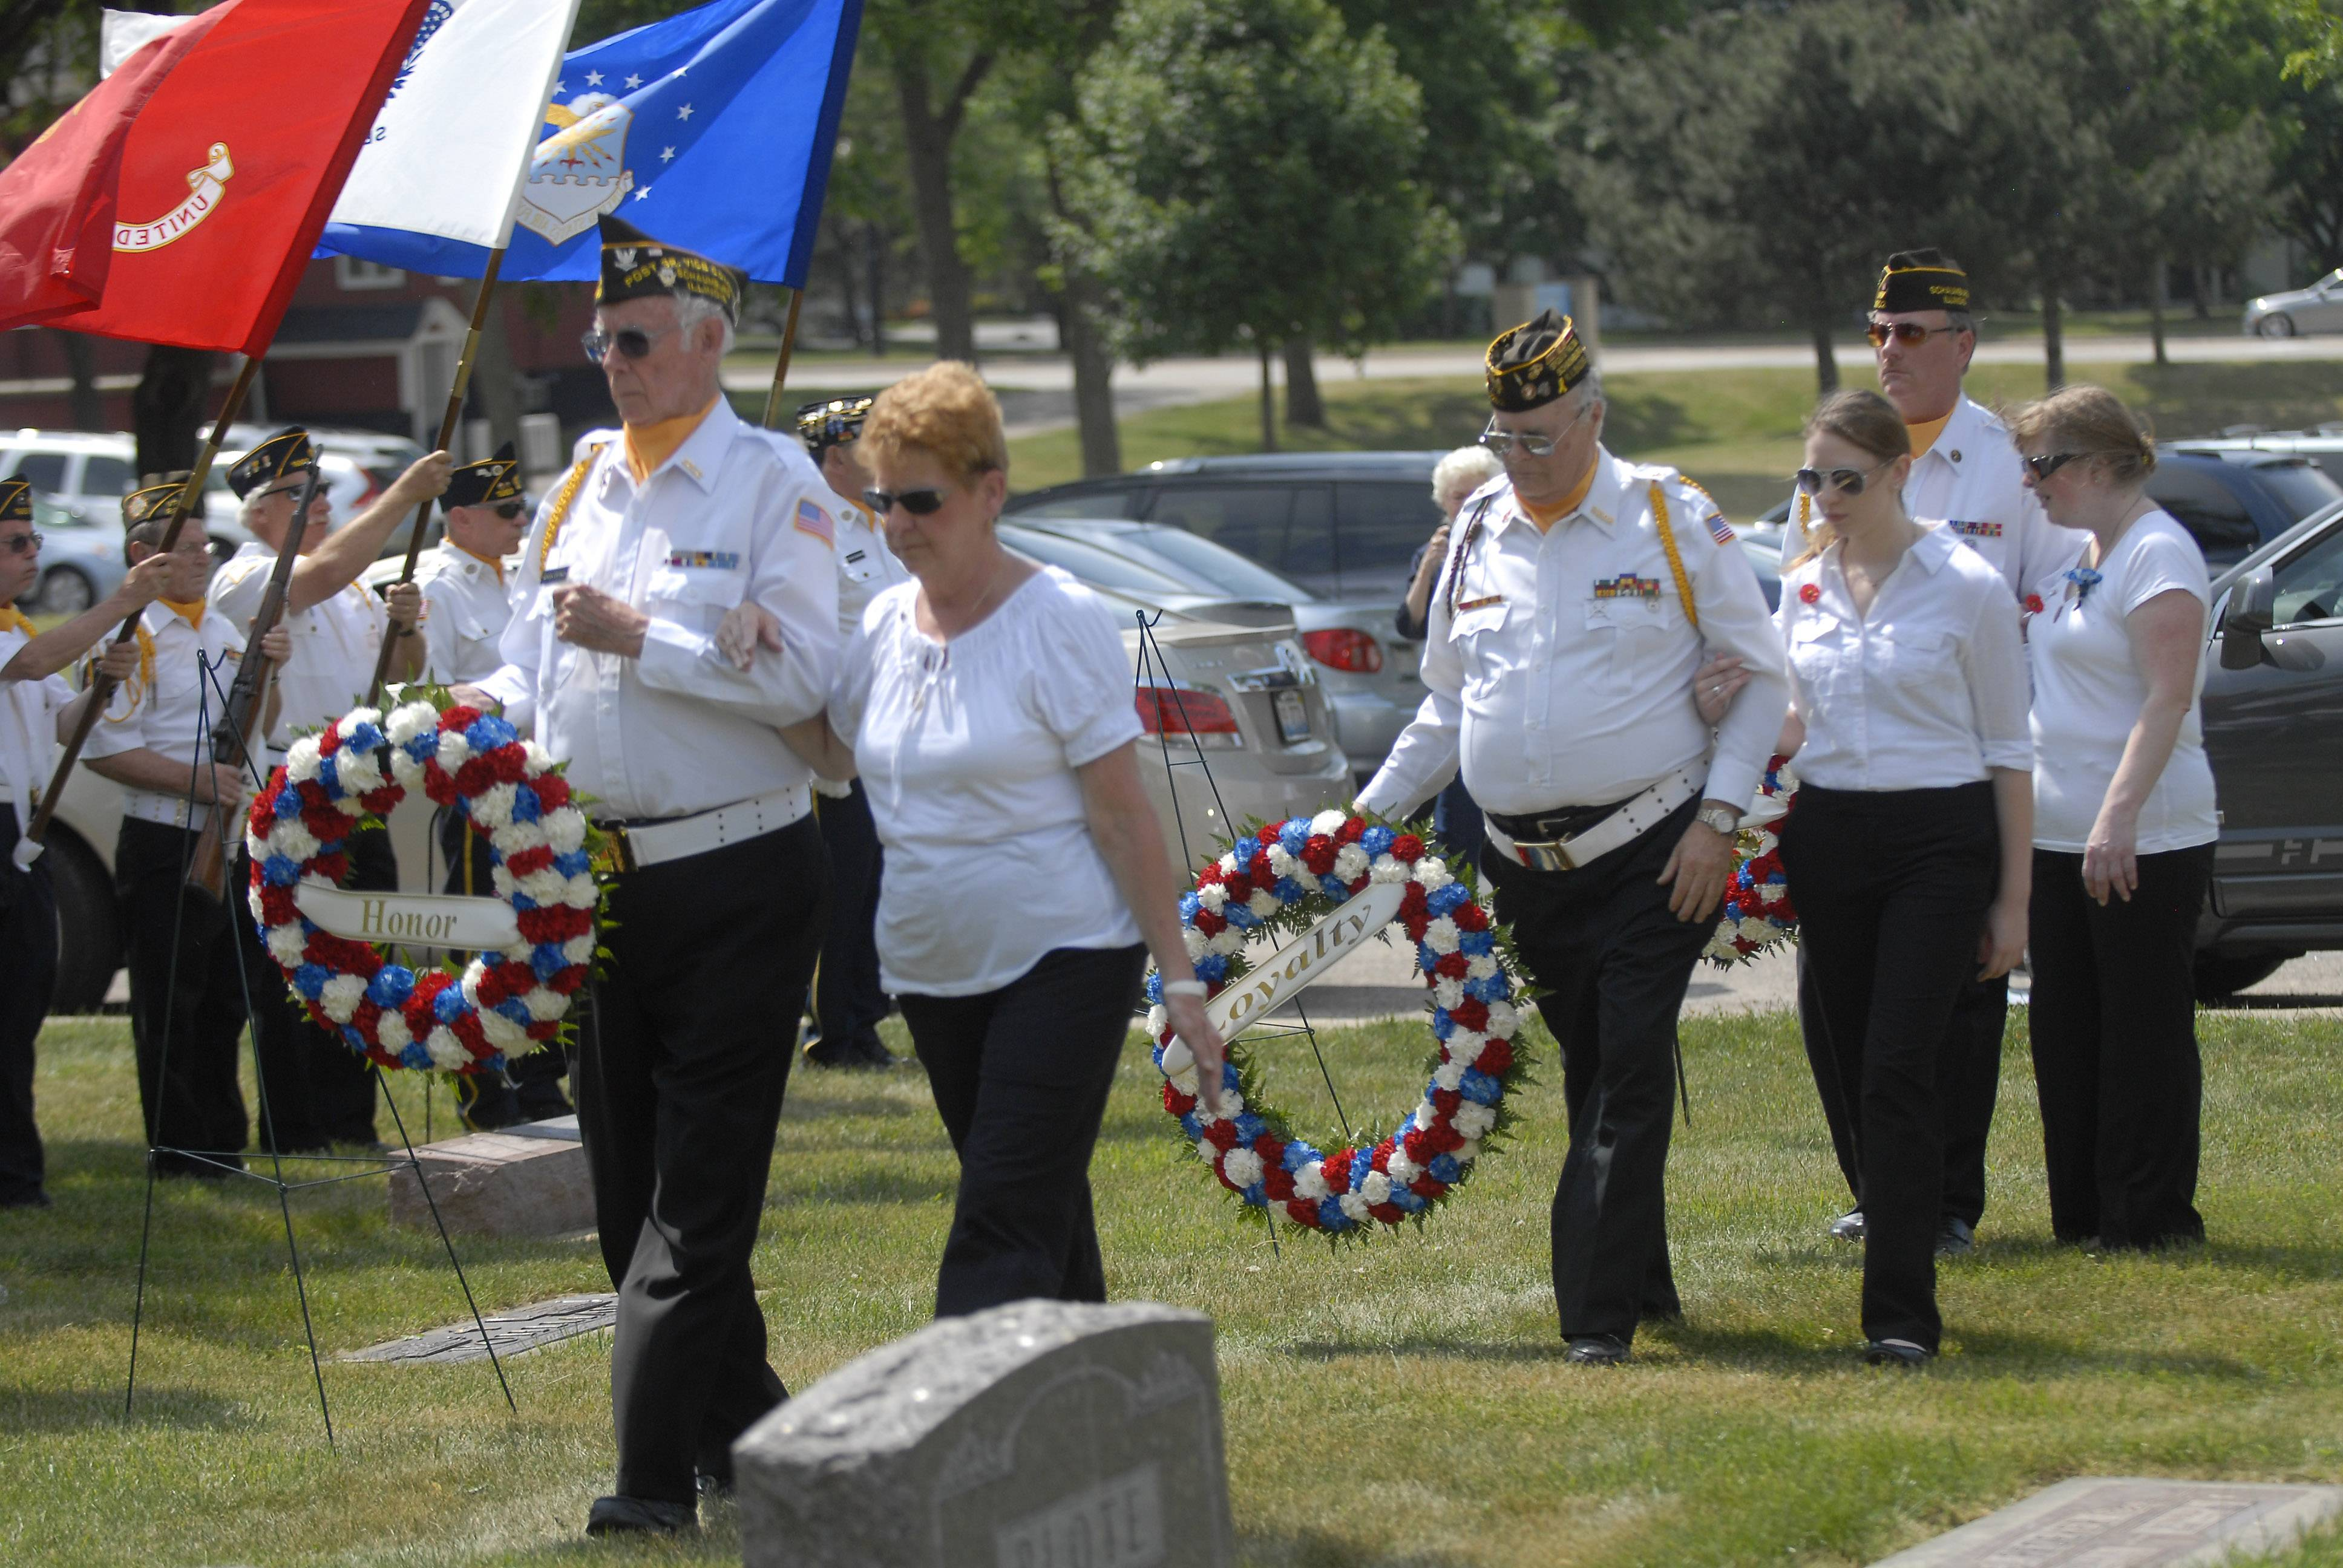 Veterans of Foreign Wars Post 2202 members and ladies auxiliary members -- from left, Gordon Stanley, Georgi Peterson, Marco Dabetic, Samantha Alderson, David Hill and Julie Hill -- place wreathes during the Memorial Day service Monday at the St. Peter's Lutheran Church cemetery in Schaumburg.